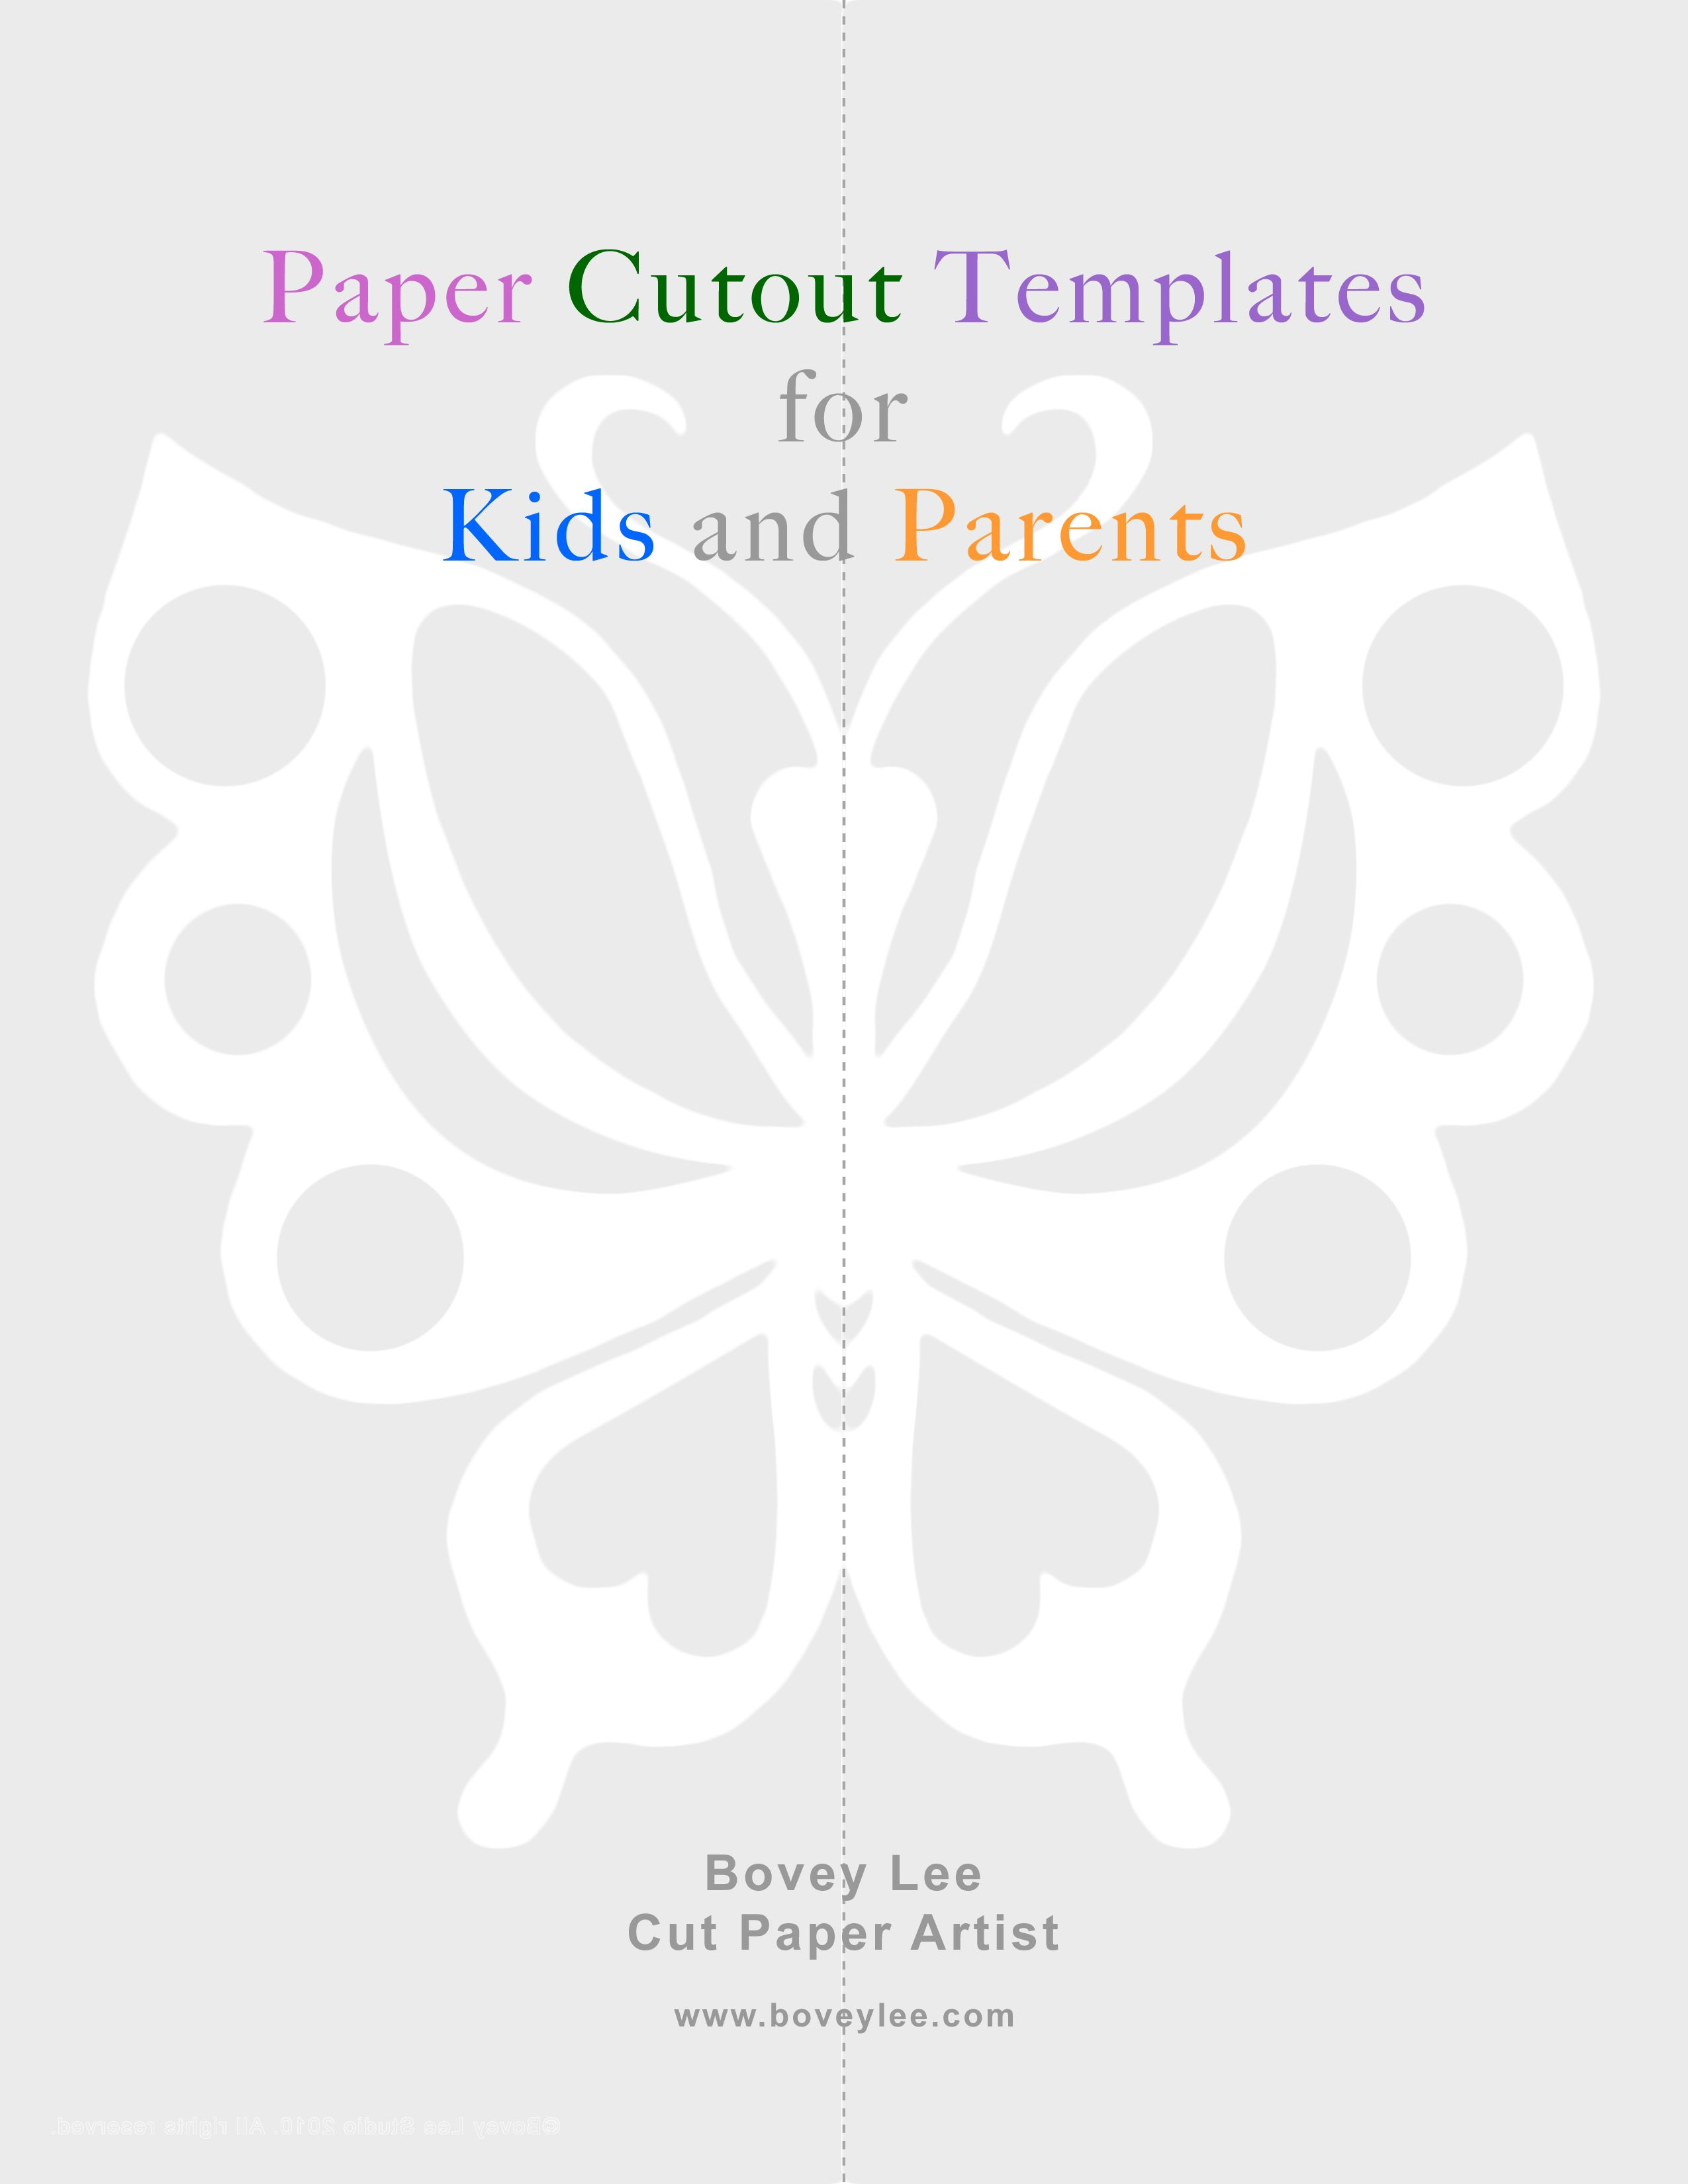 graphic relating to Paper Cutout Templates referred to as Free of charge paper cutout templates for little ones and mothers and fathers Artwork